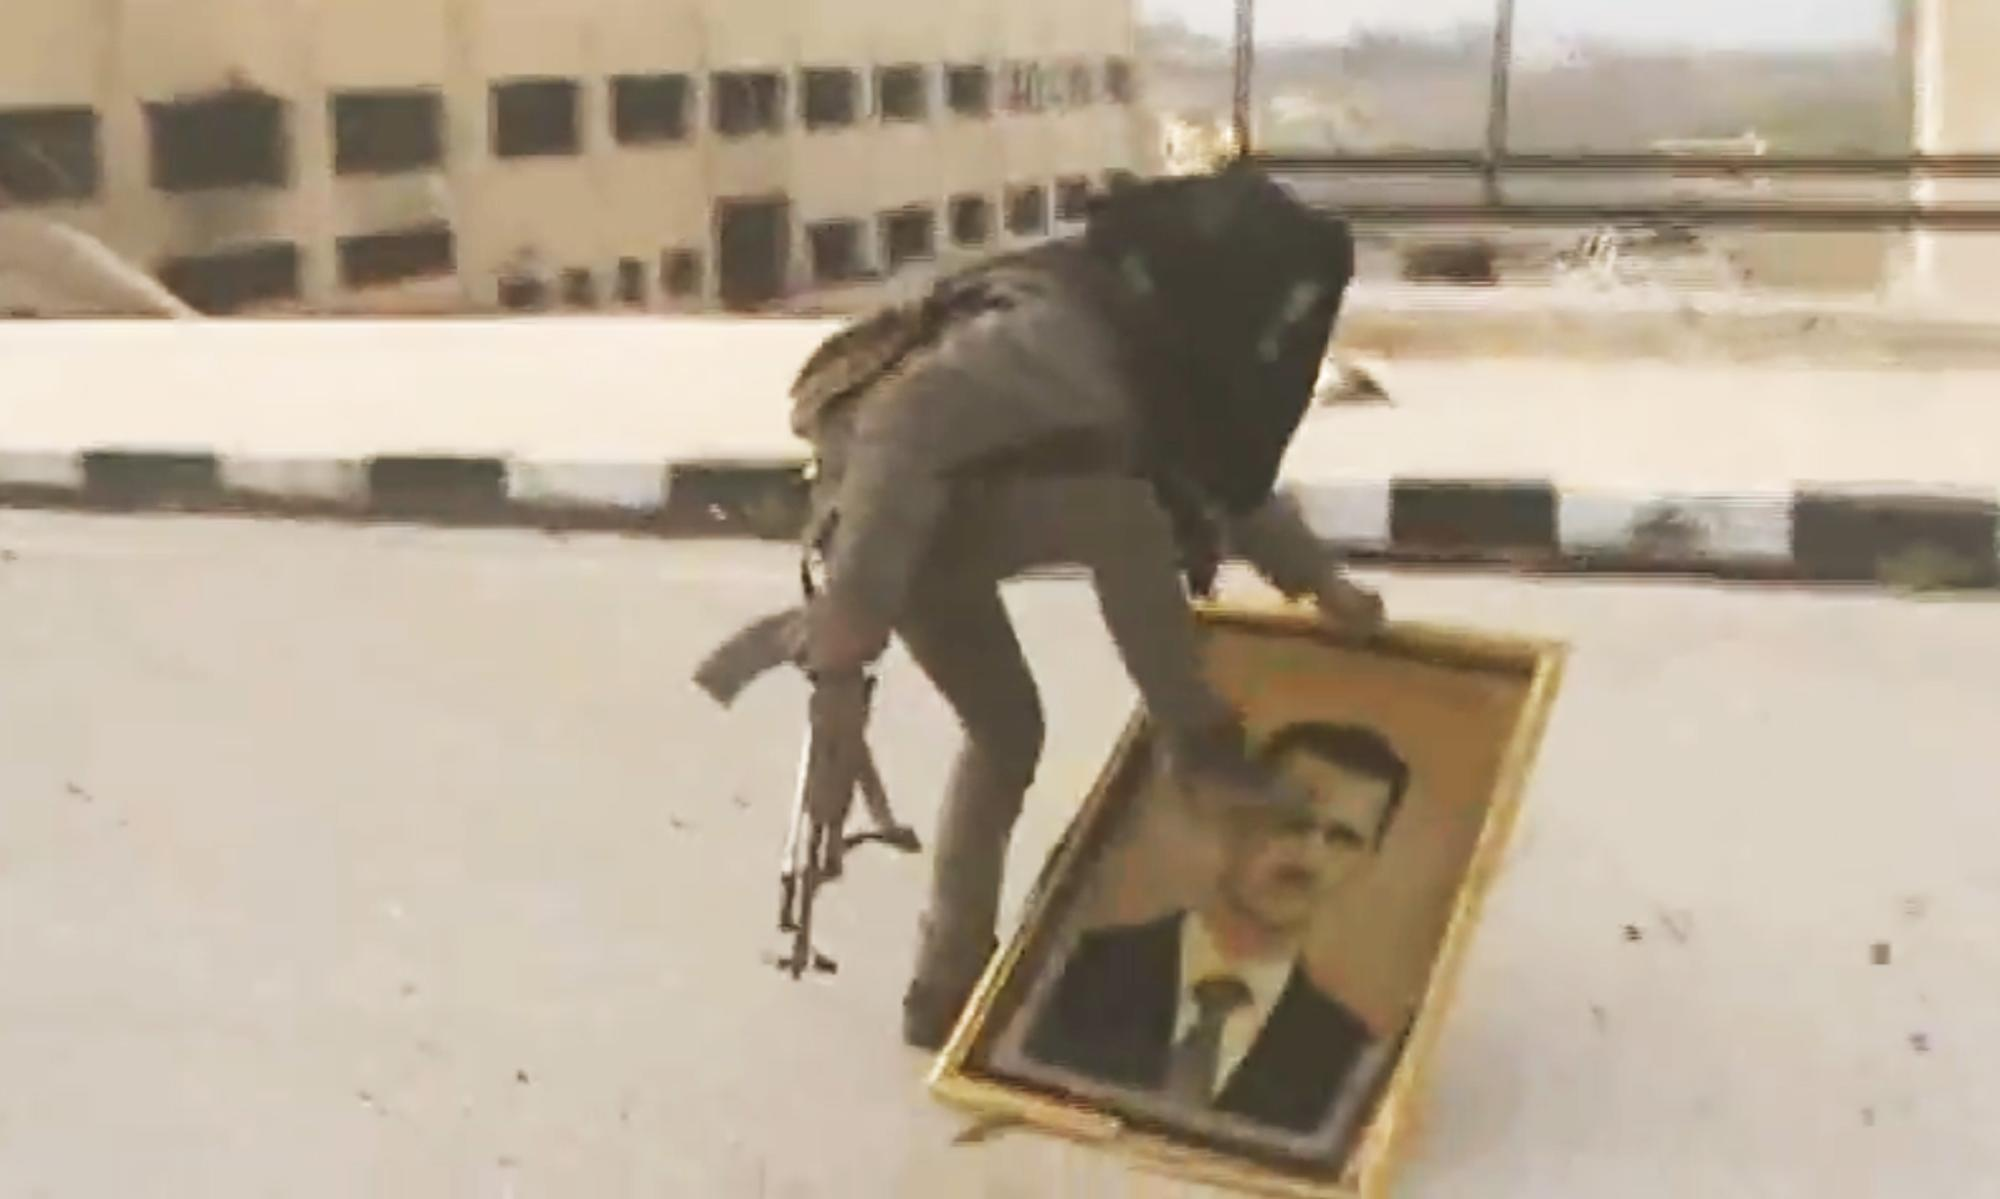 In this Sunday March 3, 2013 image taken from video obtained from the Shaam News Network, which has been authenticated based on its contents and other AP reporting, a Syrian rebel fighter stomps on a picture of Syrian President Bashar Assad within the police academy complex in Khan al-Asal, in the provence of Aleppo, Syria. The Britain-based Syrian Observatory for Human Rights said the rebels seized the police academy in Khan al-Asal after entering the sprawling government complex with captured tanks. The Observatory said the battle left at least 120 soldiers and 80 rebels dead. (AP Photo/Shaam News Network via AP video)